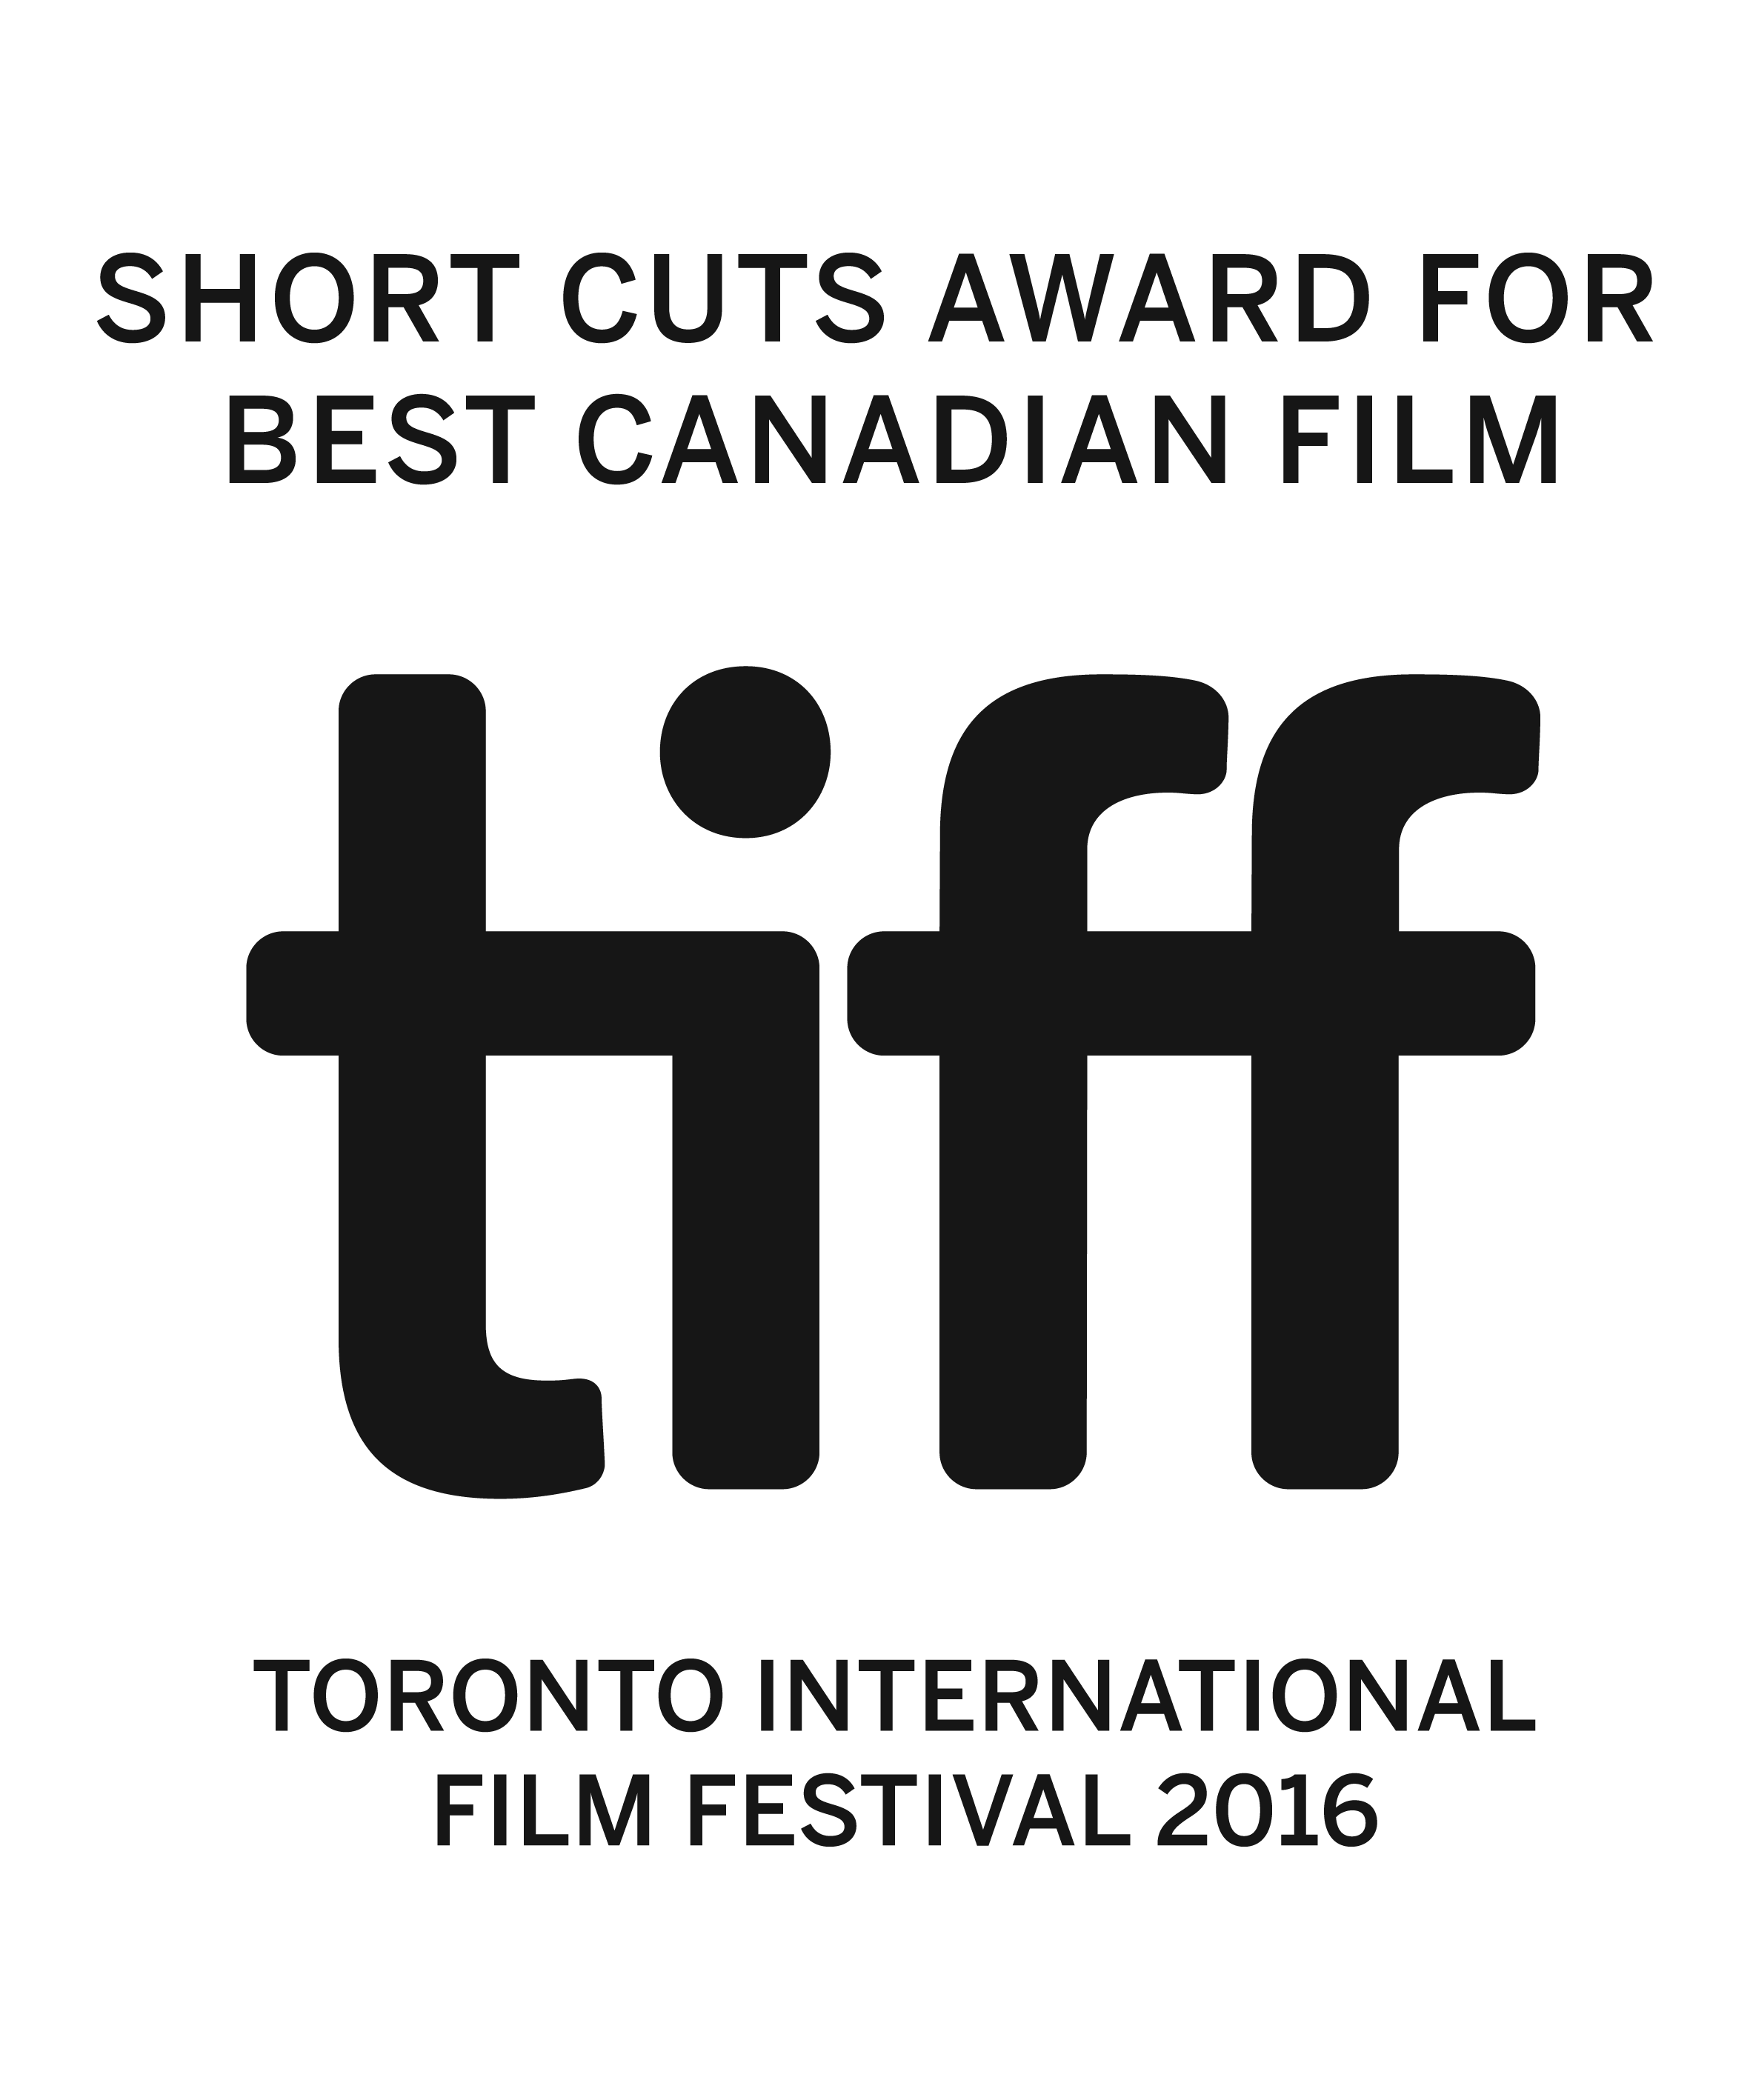 TIFF16-award-Short_Cuts_Canadian-blk.png